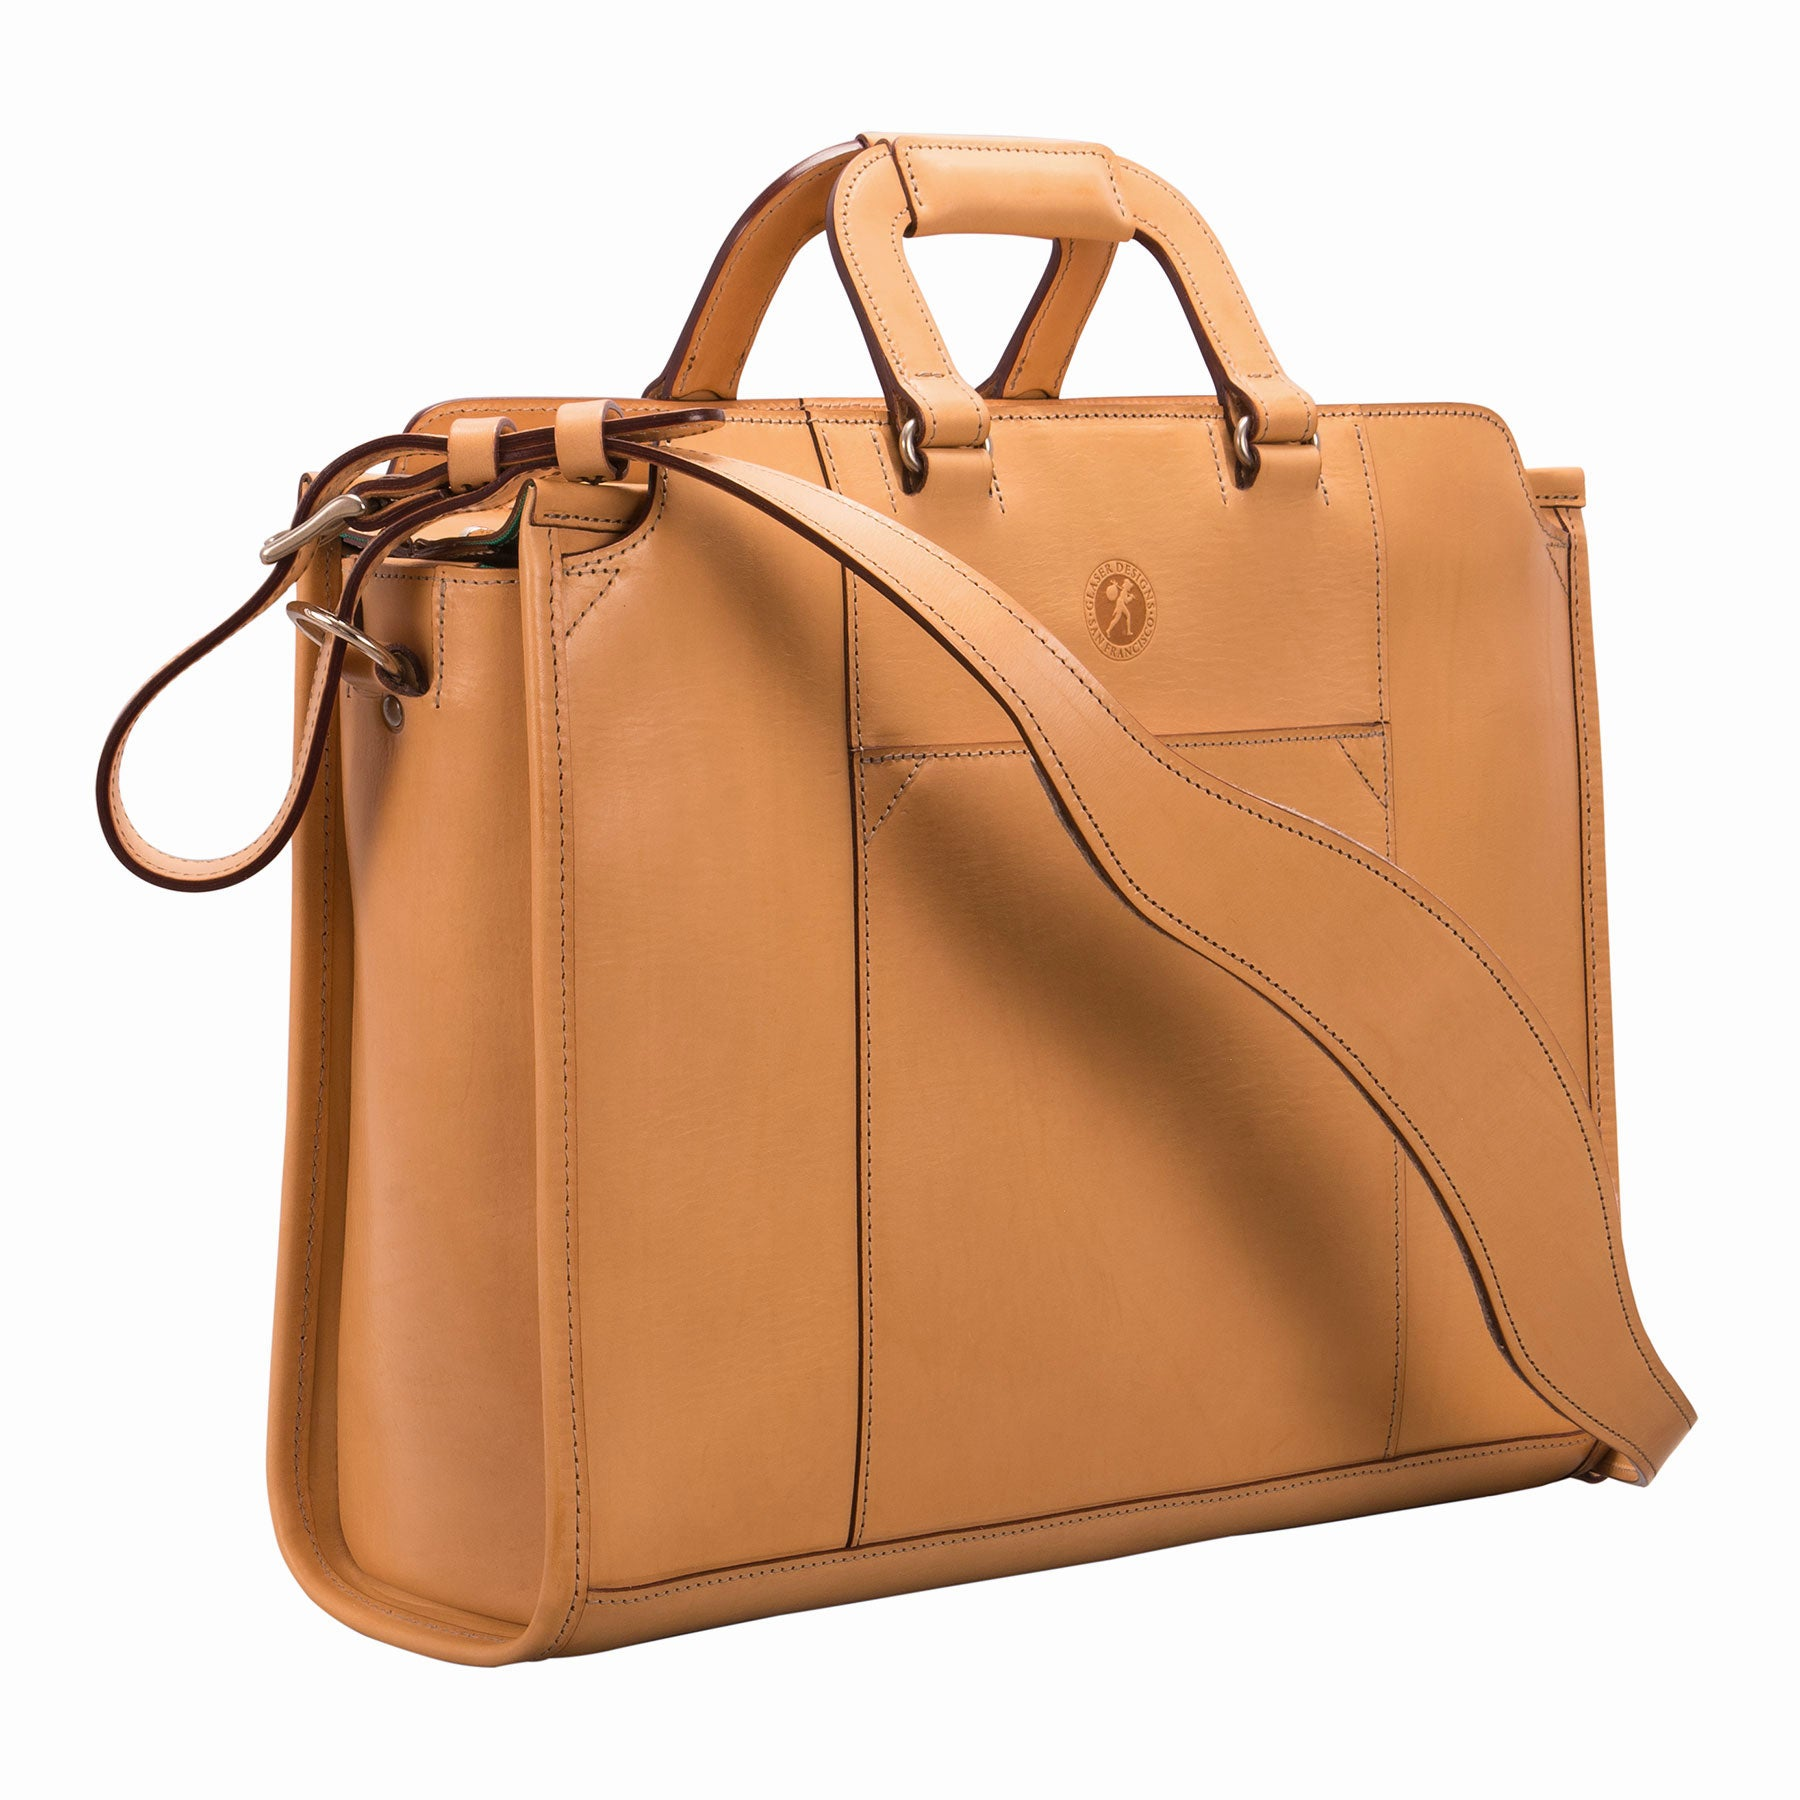 Glaser Designs Day Tote. Hand burnished Natural vegetable tanned leather. Solid brass hardware. Made to-measure, custom sizes.